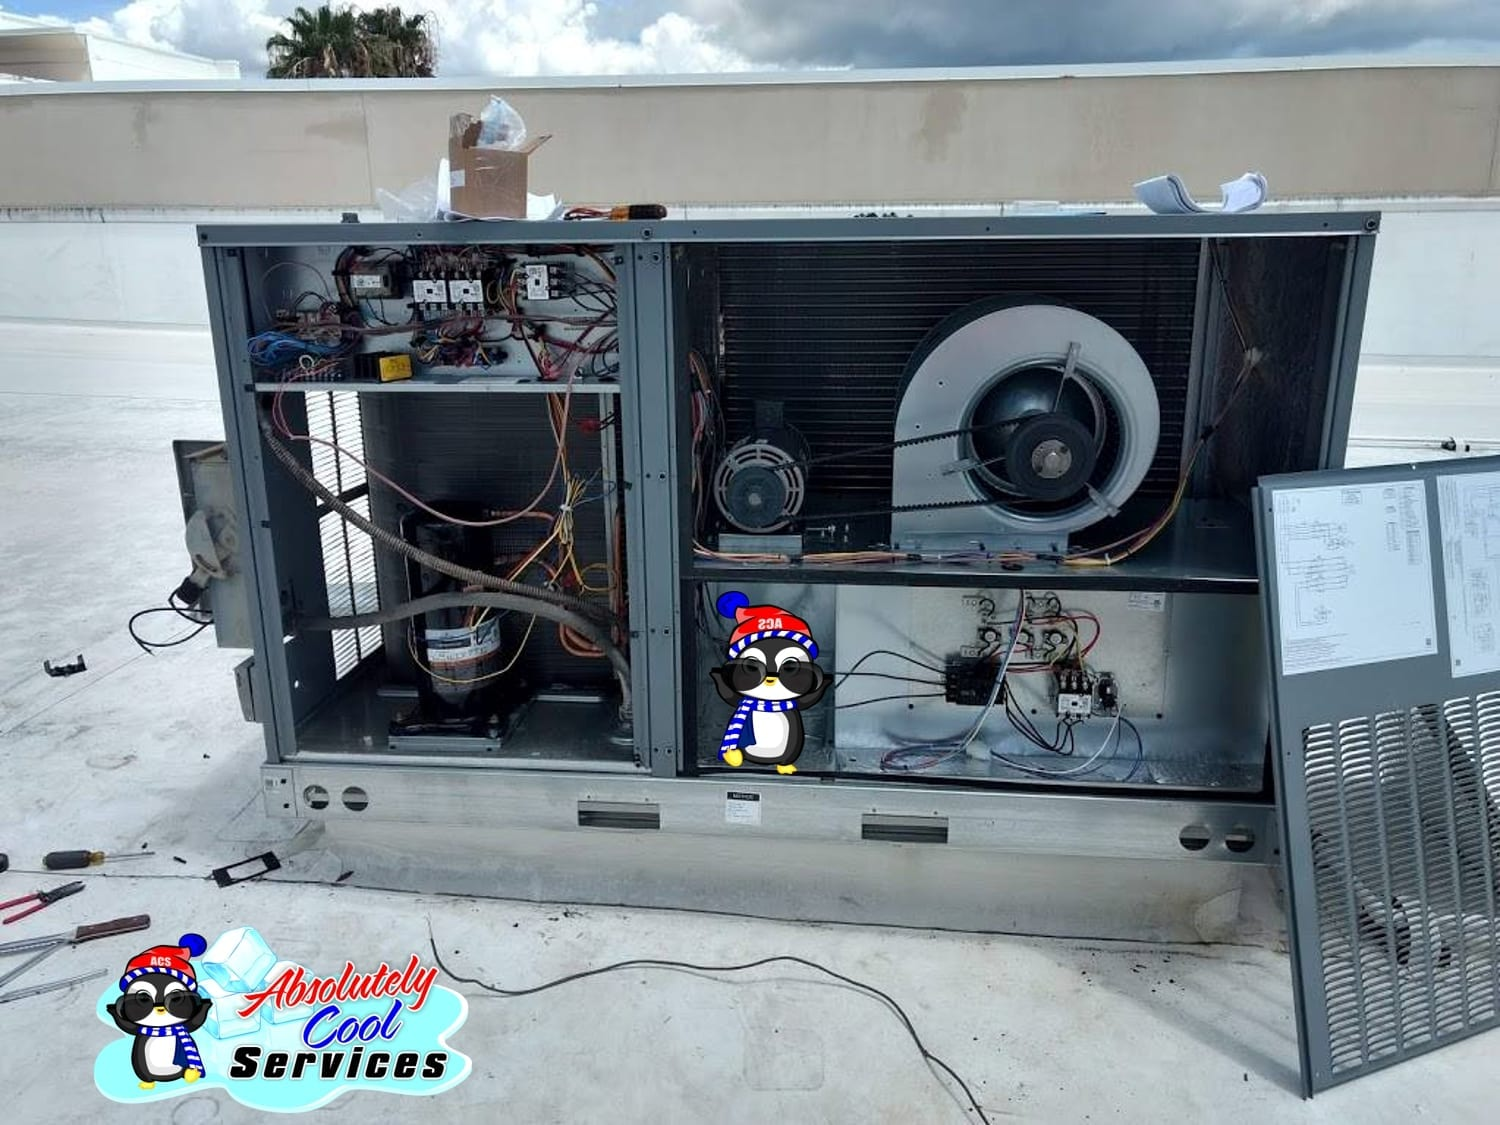 Roof Air Conditioning | Emergency Air Conditioning Maintenance Service near Lake Worth